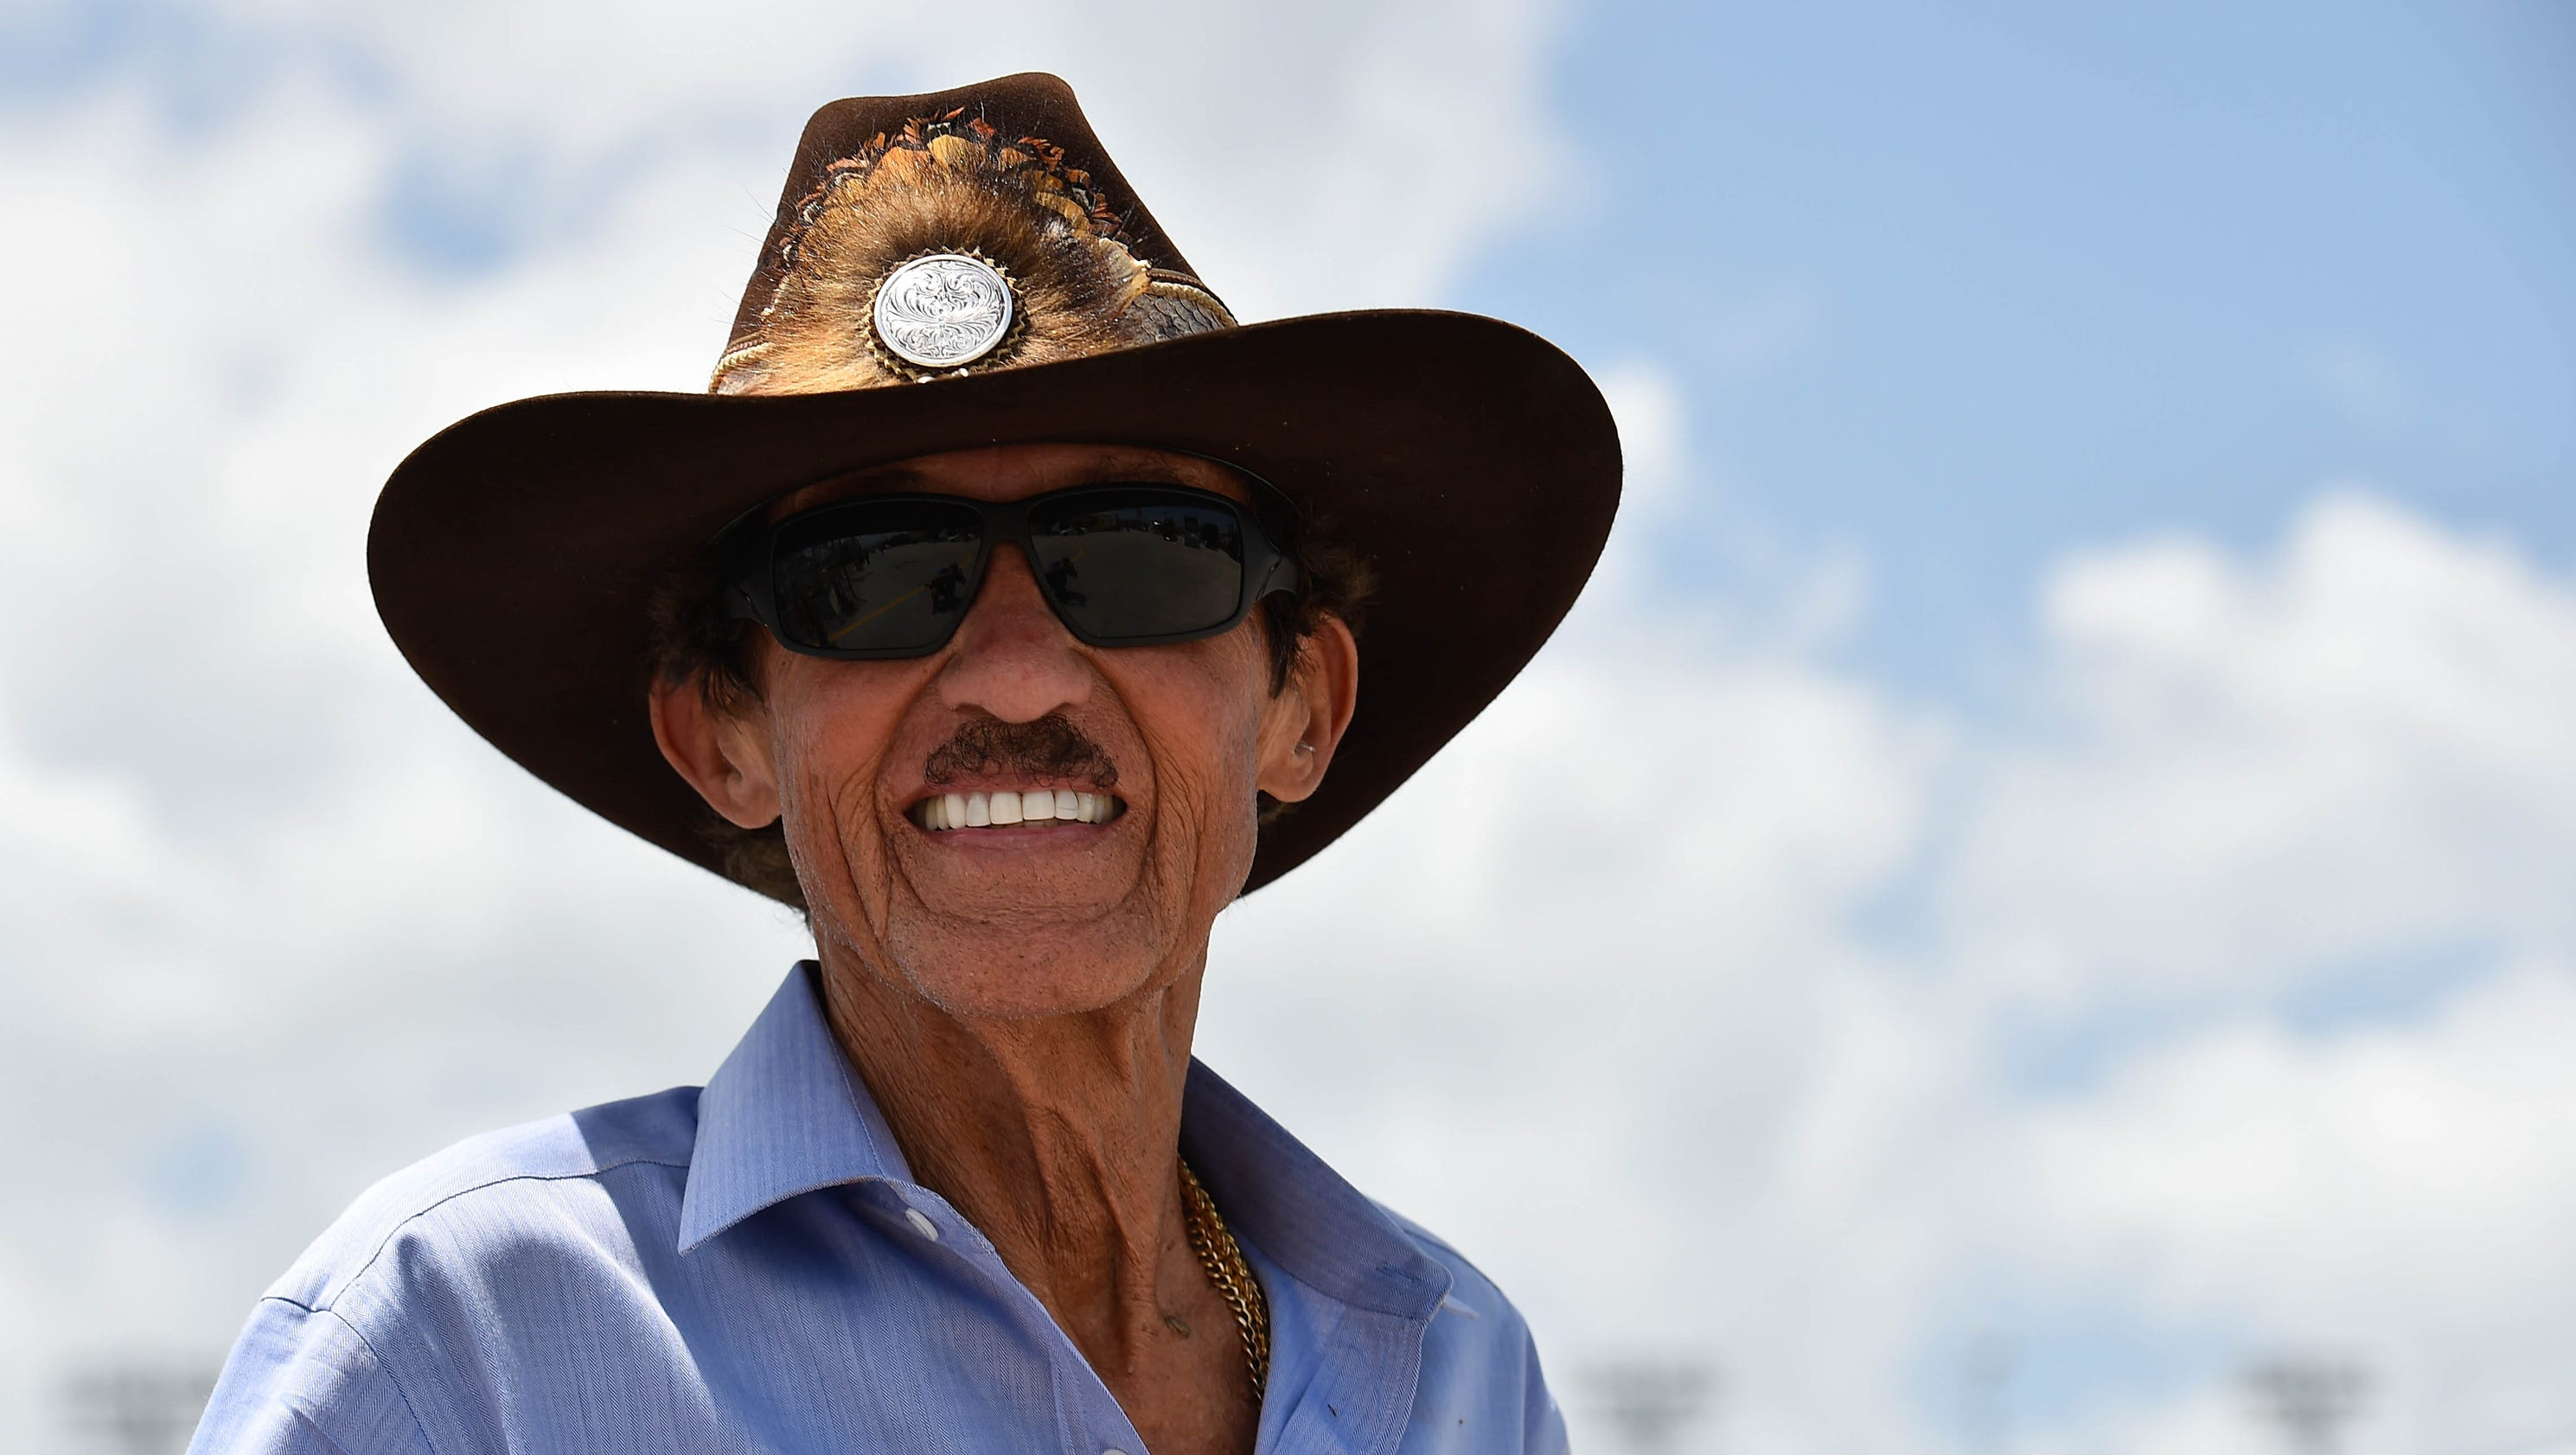 Richard Petty Motorsports >> Richard Petty receives Argetsinger Award for contributions to motorsports